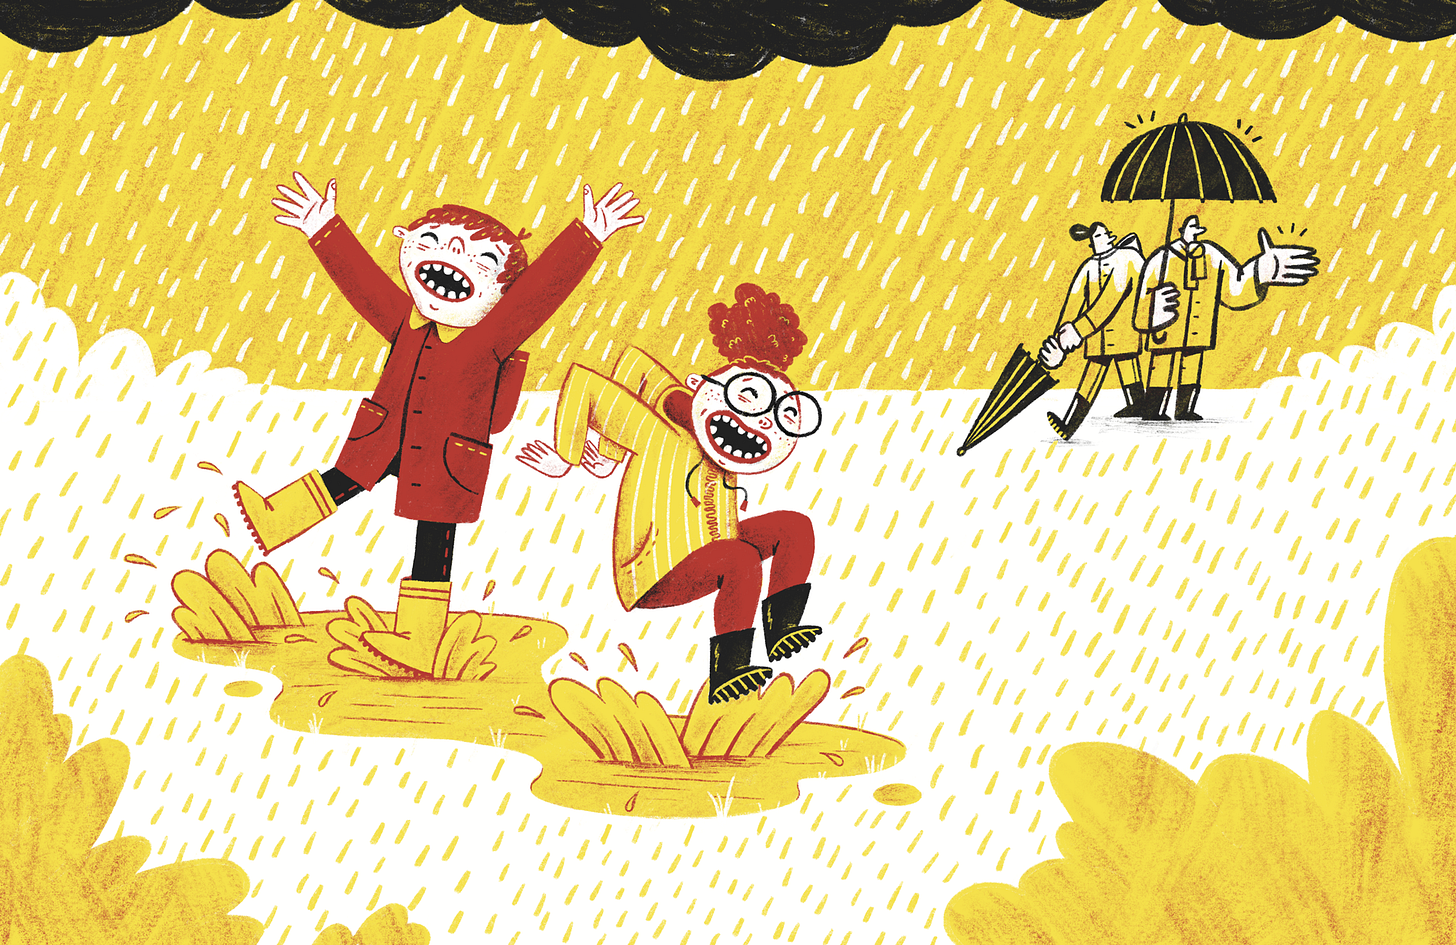 Two children jump in puddles while their parents watch from under their umbrellas.